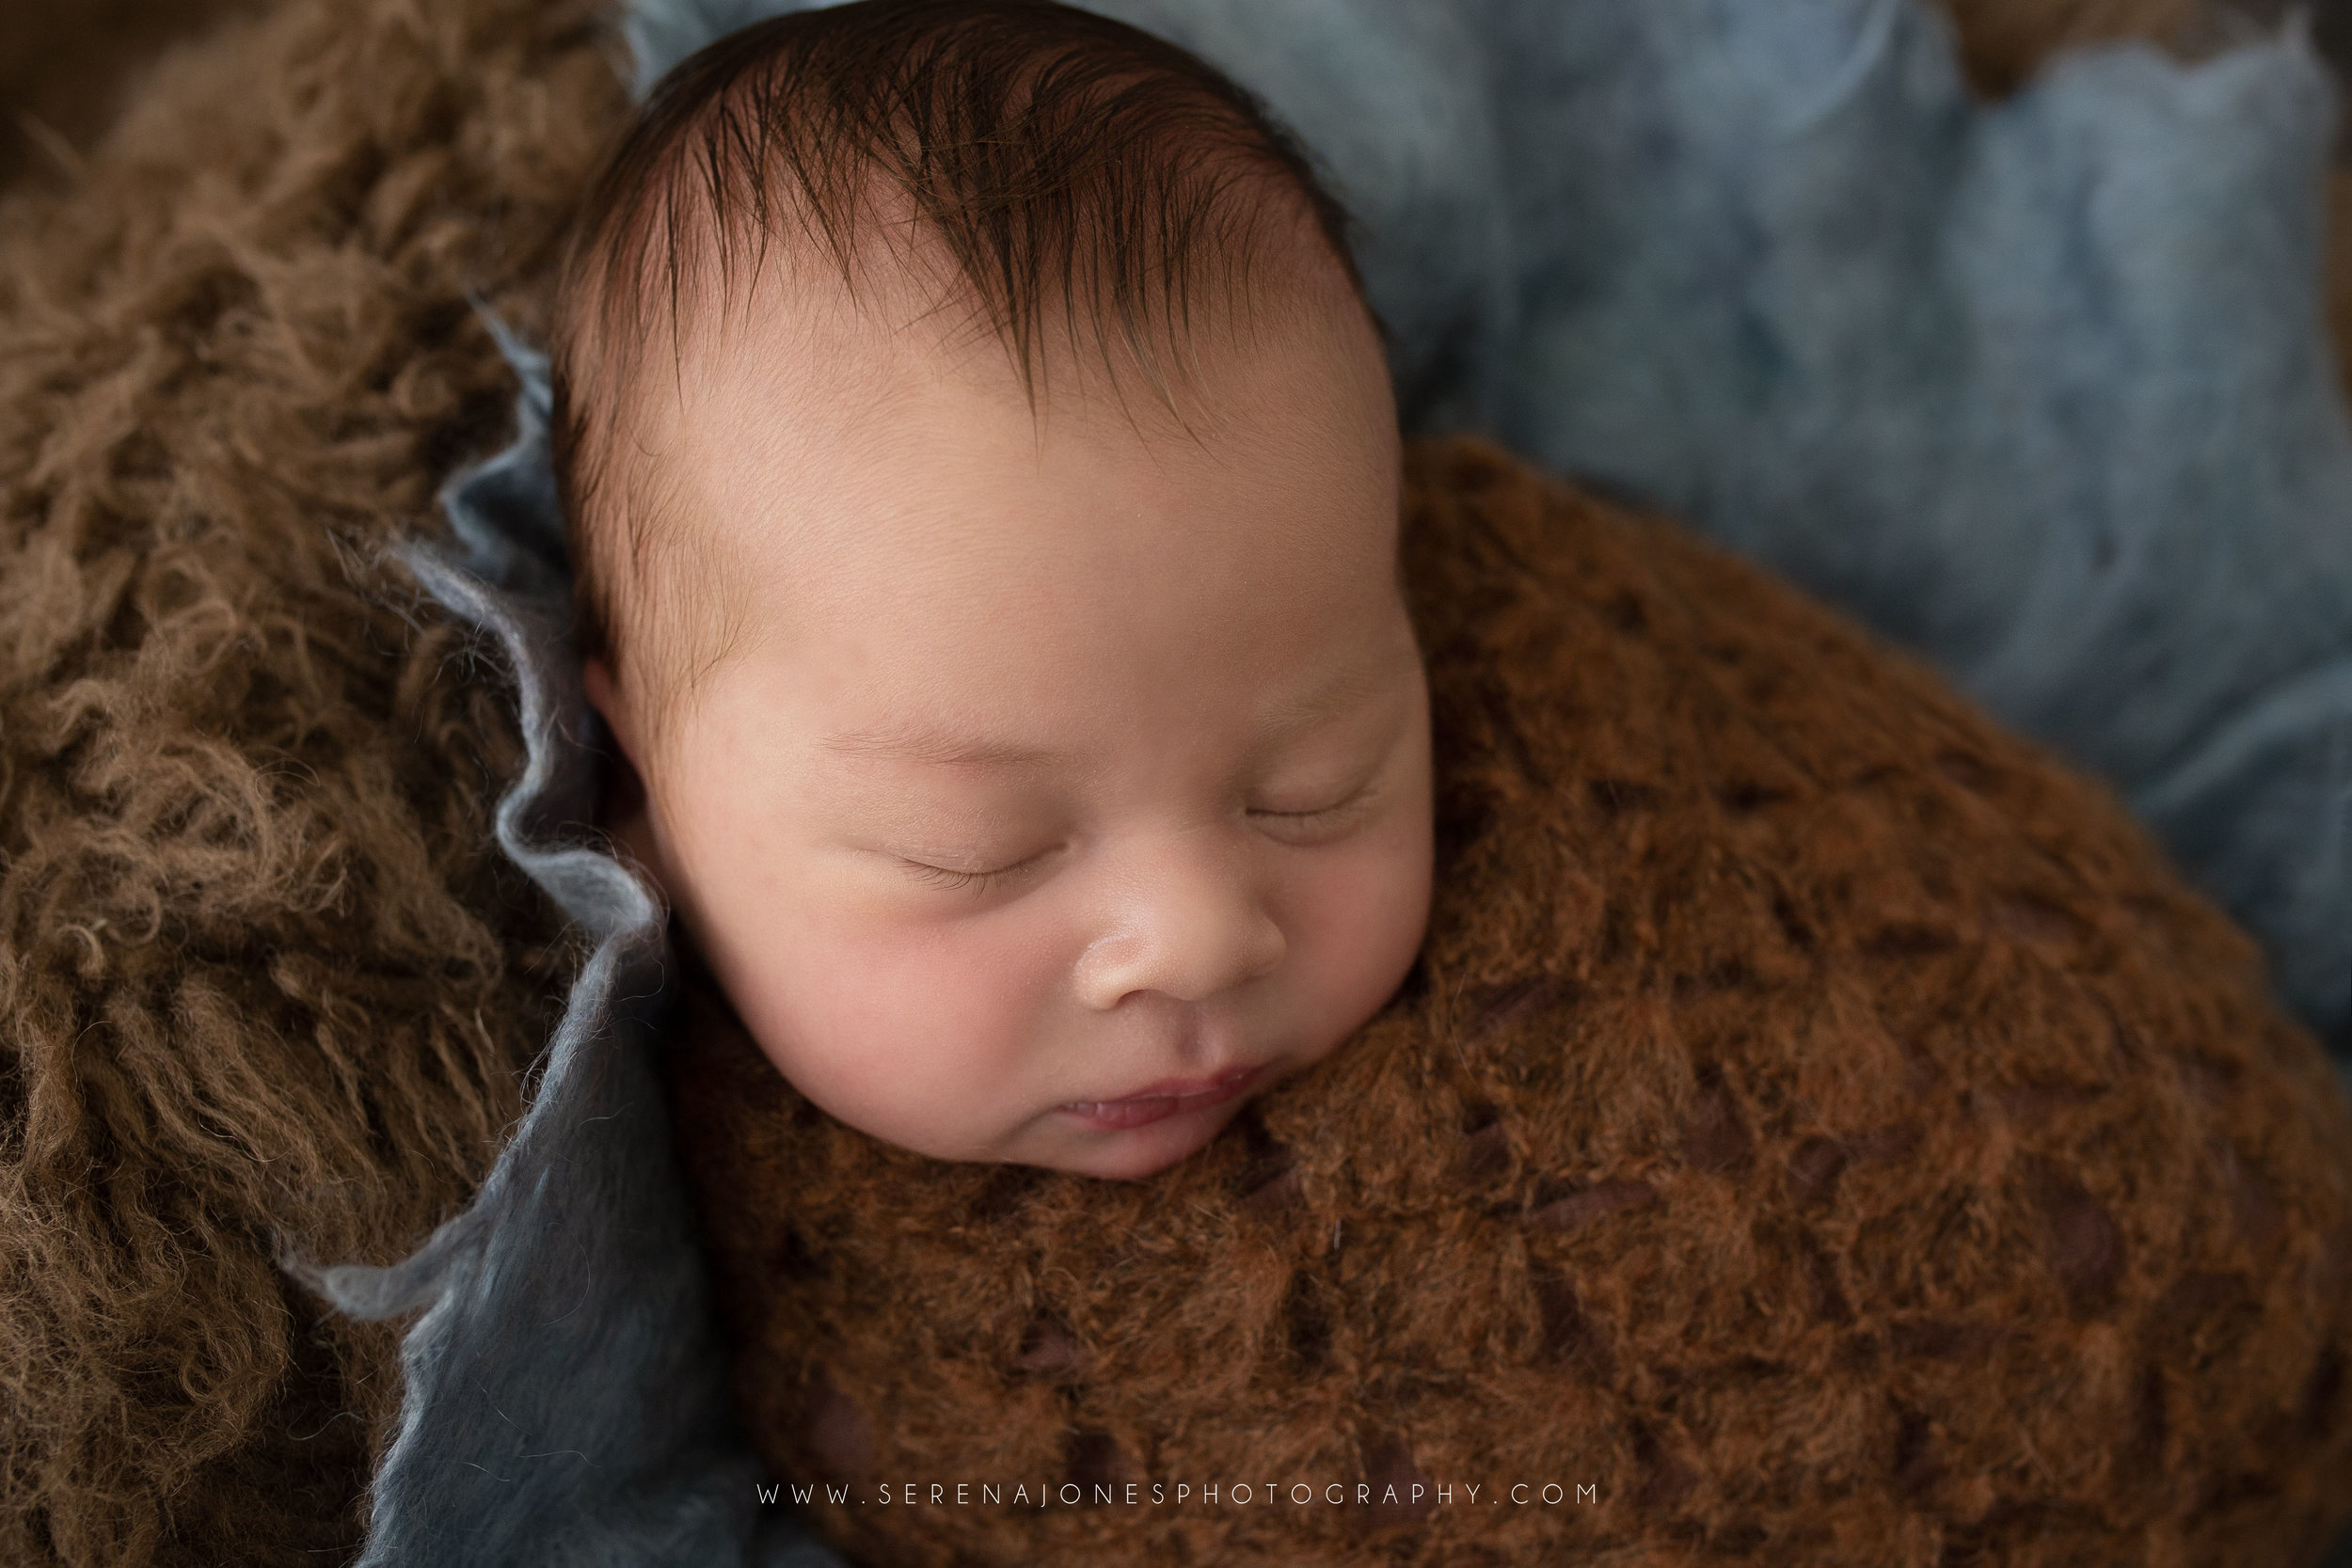 Serena Jones Photography -  Theodore Davis - 10 FB.jpg